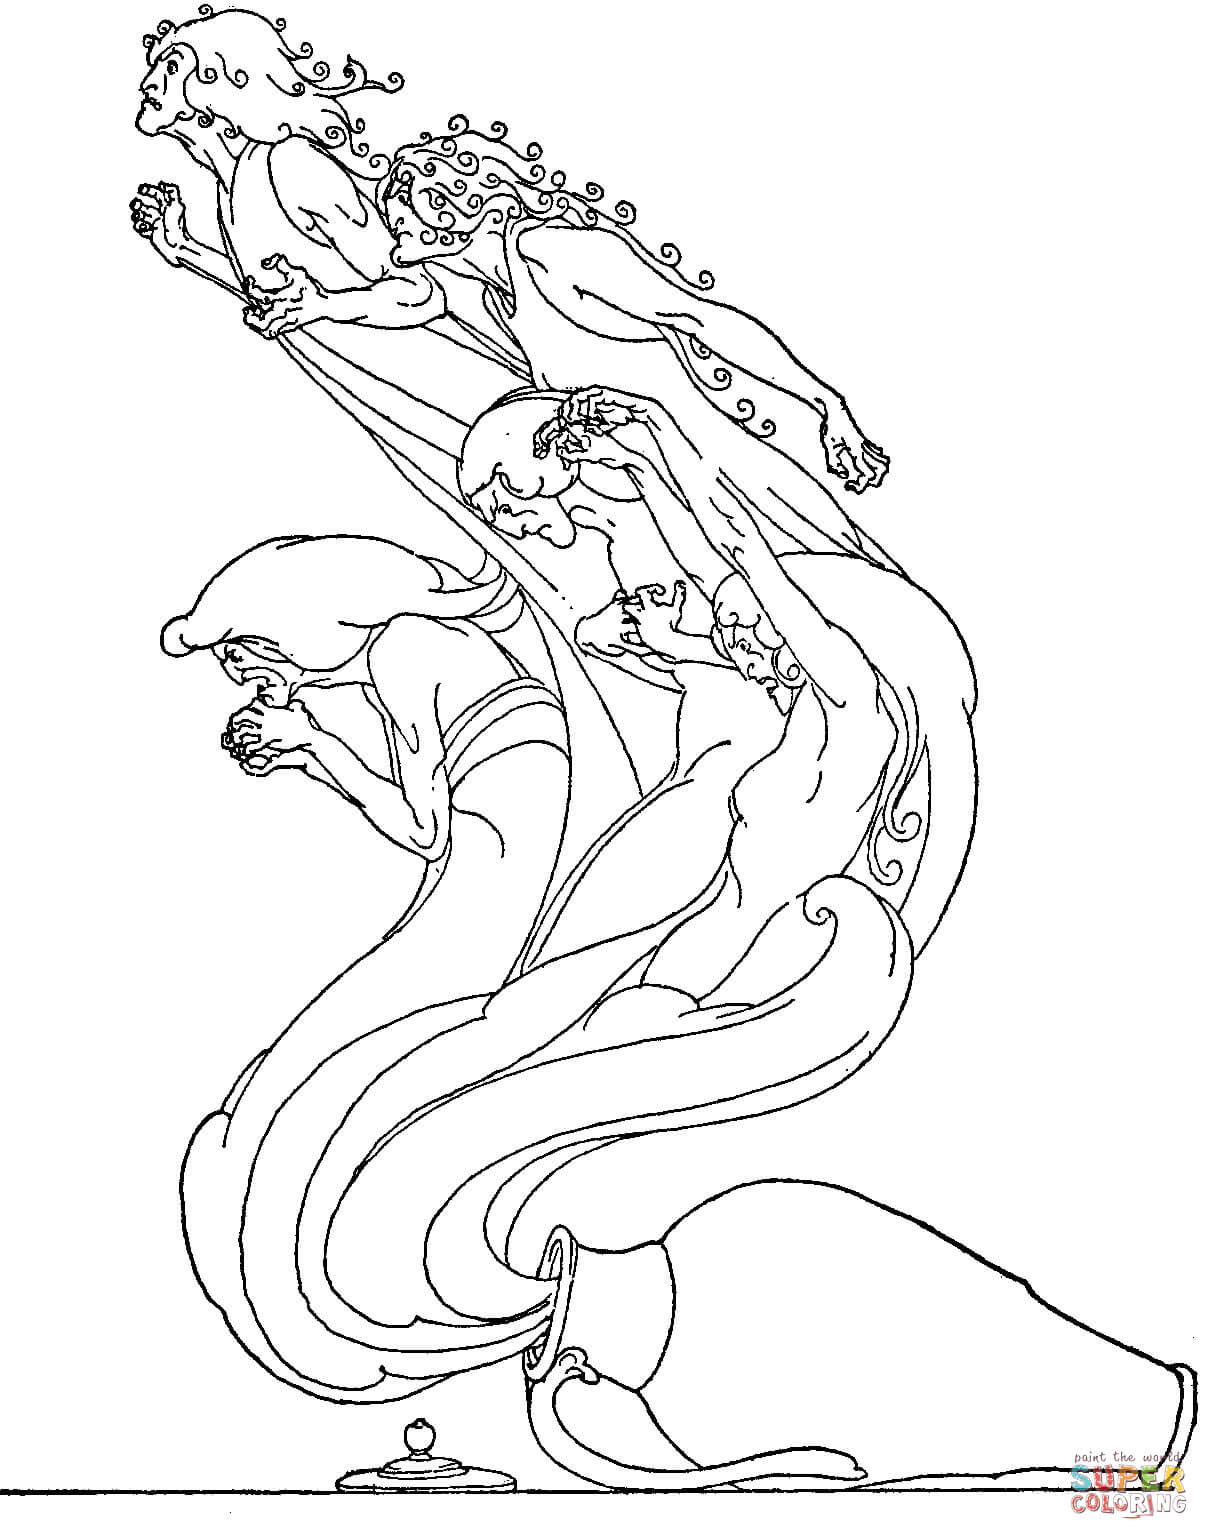 Coloring Pages Mythology At Getdrawings Free Download